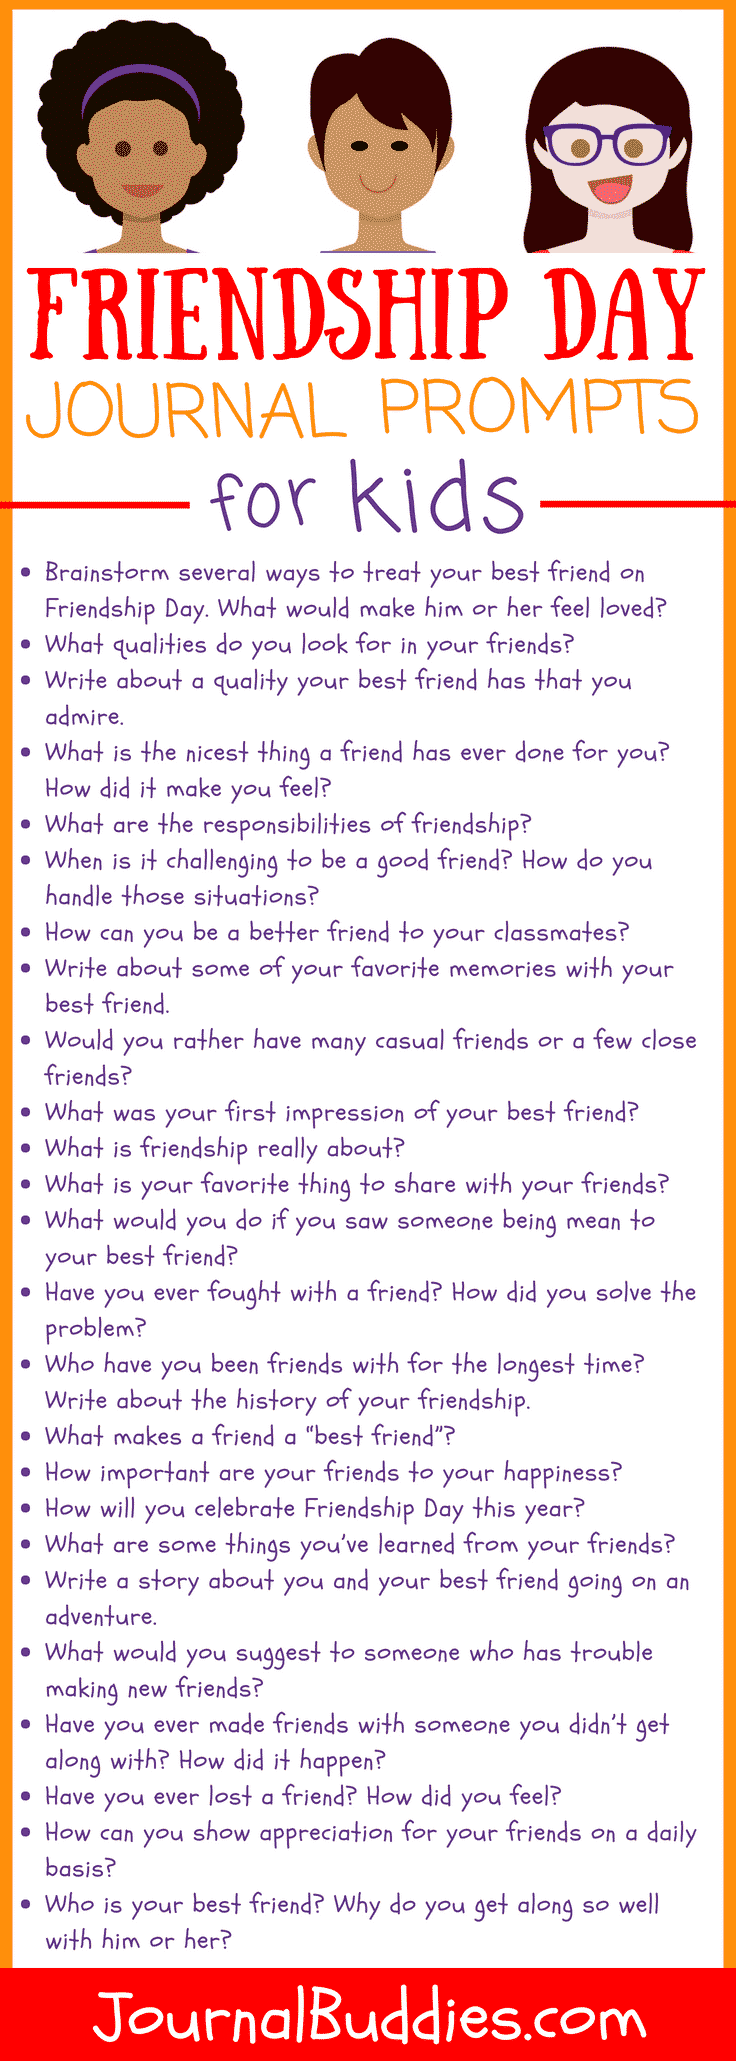 Essay writing about friendship